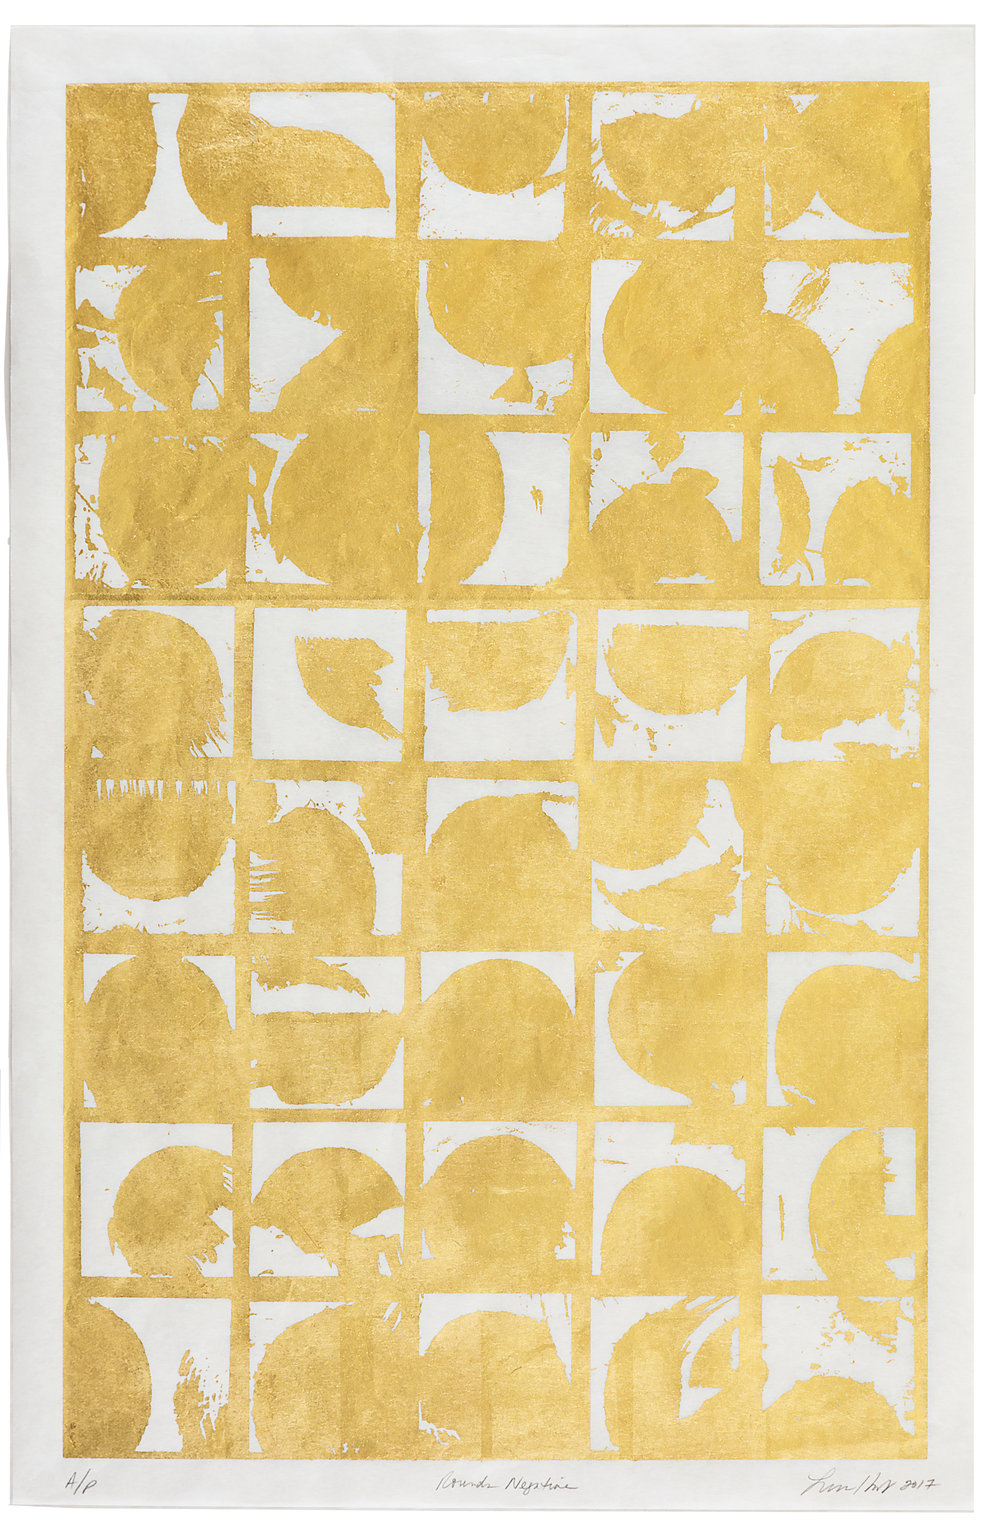 "Rounds Negative,   2017 Screen print. Limited edition 10. 24K gold leaf, Misu Rice Paper. 22"" x 32""  Inquire"